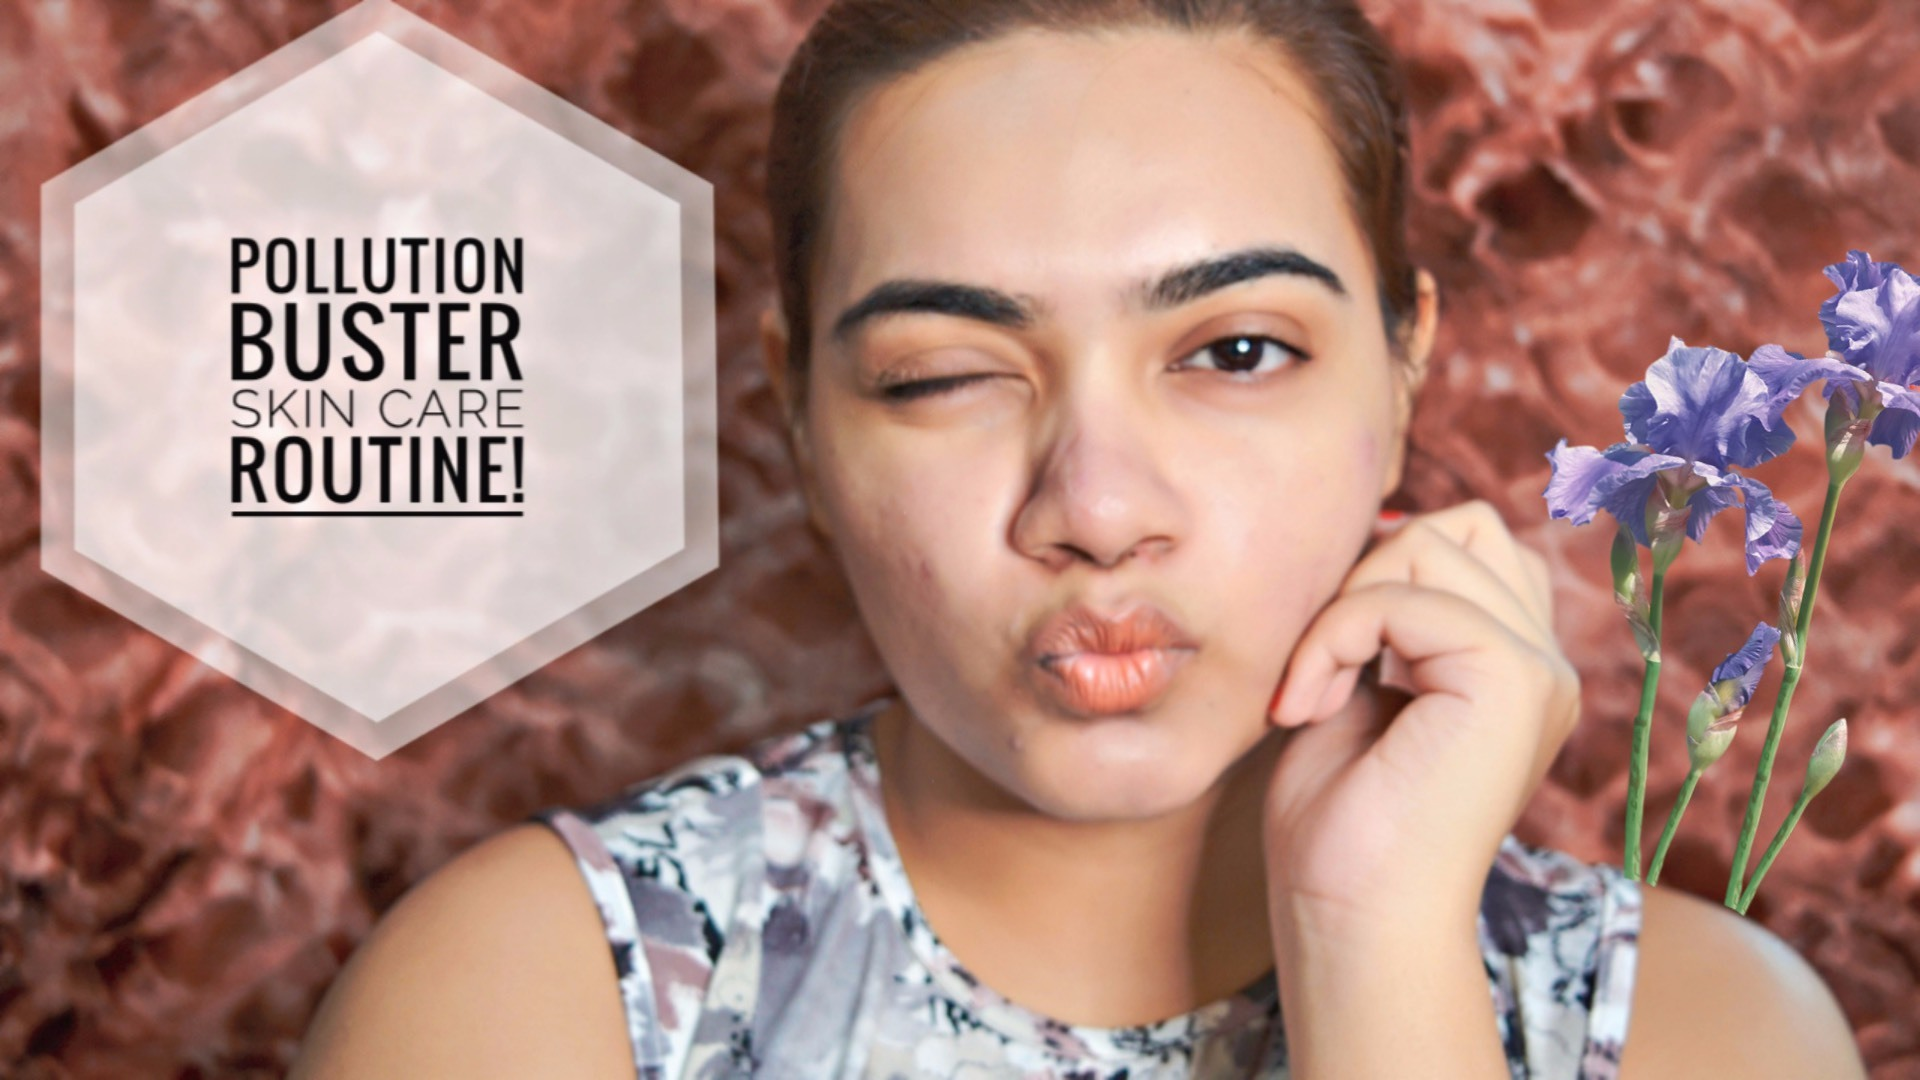 Pollution Buster Skincare Routine! image